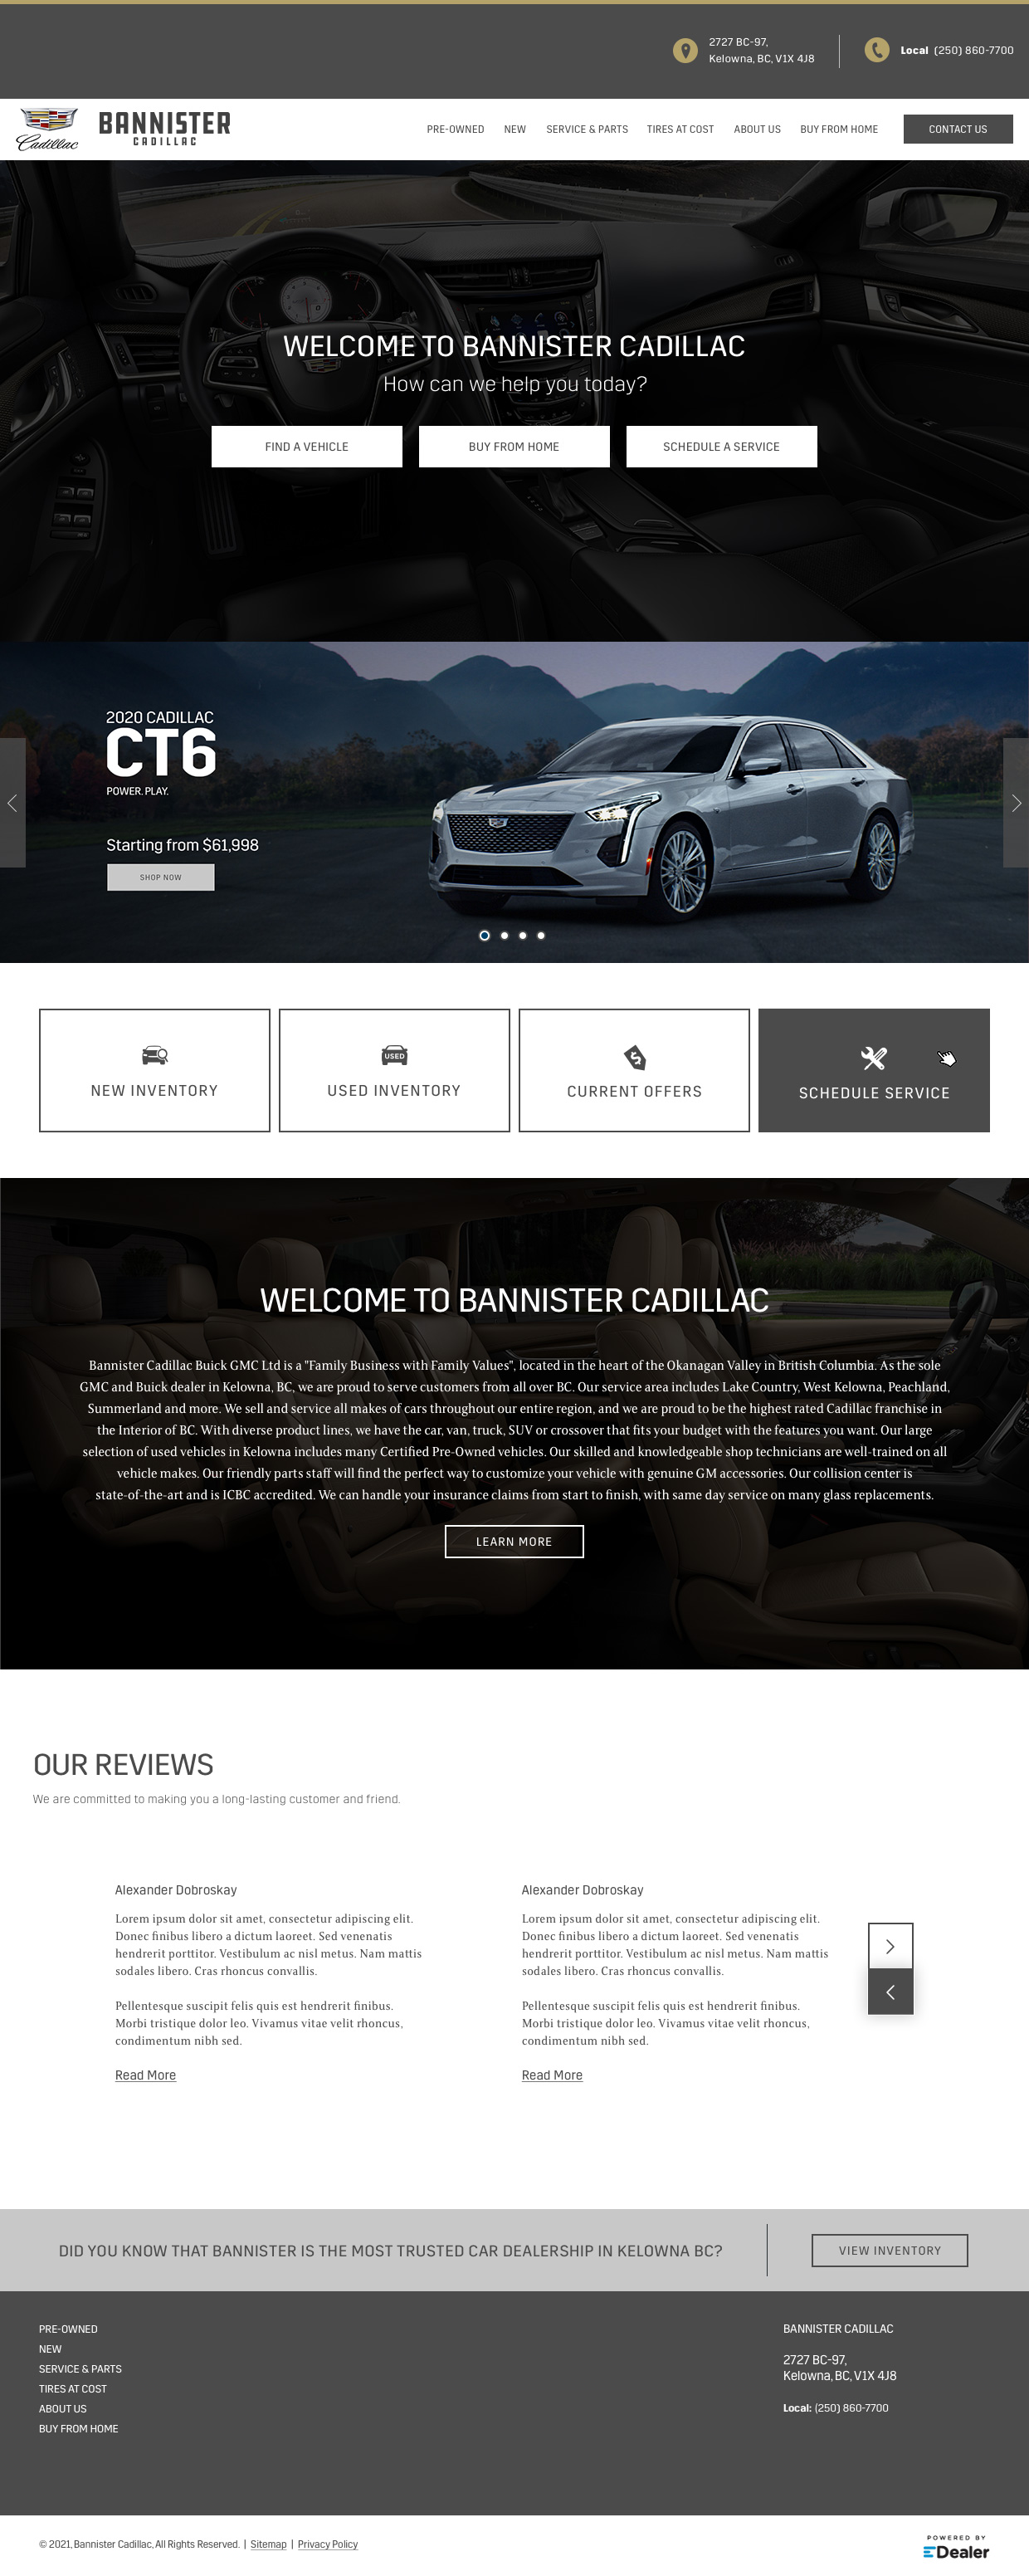 Bannister Cadillac